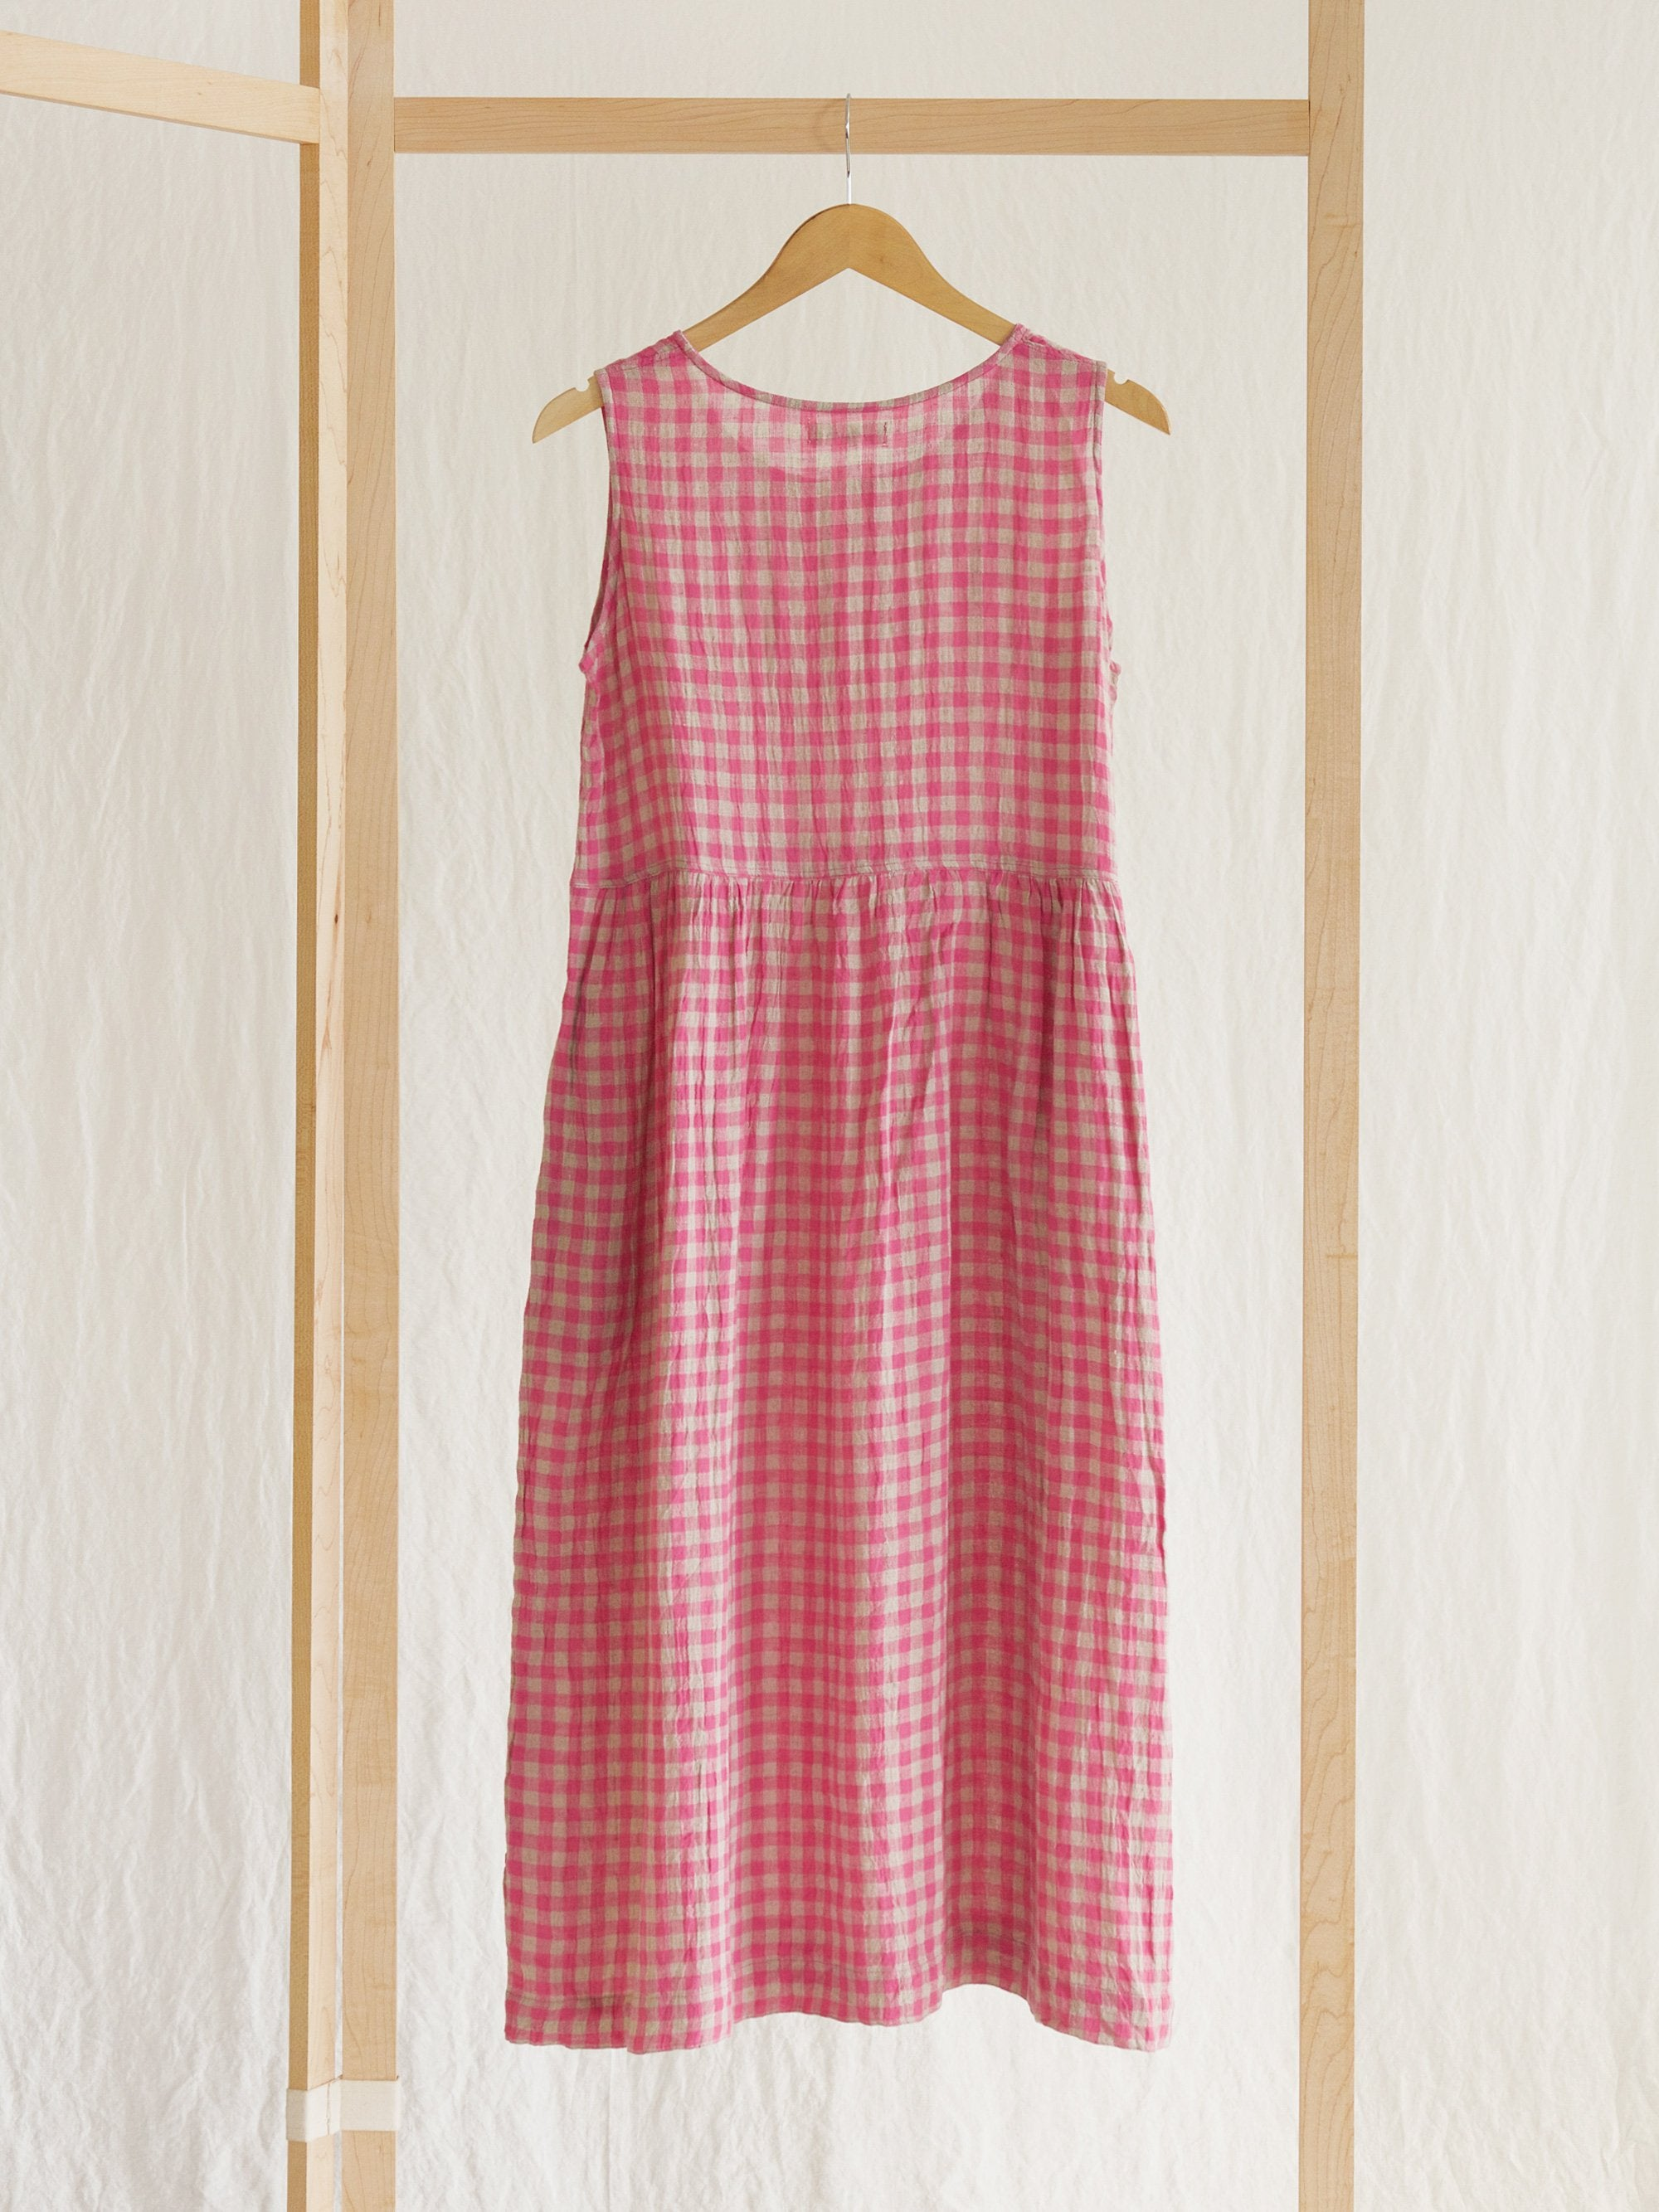 Namu Shop - Ichi Antiquites Sleeveless Linen Dress - Pink Gingham